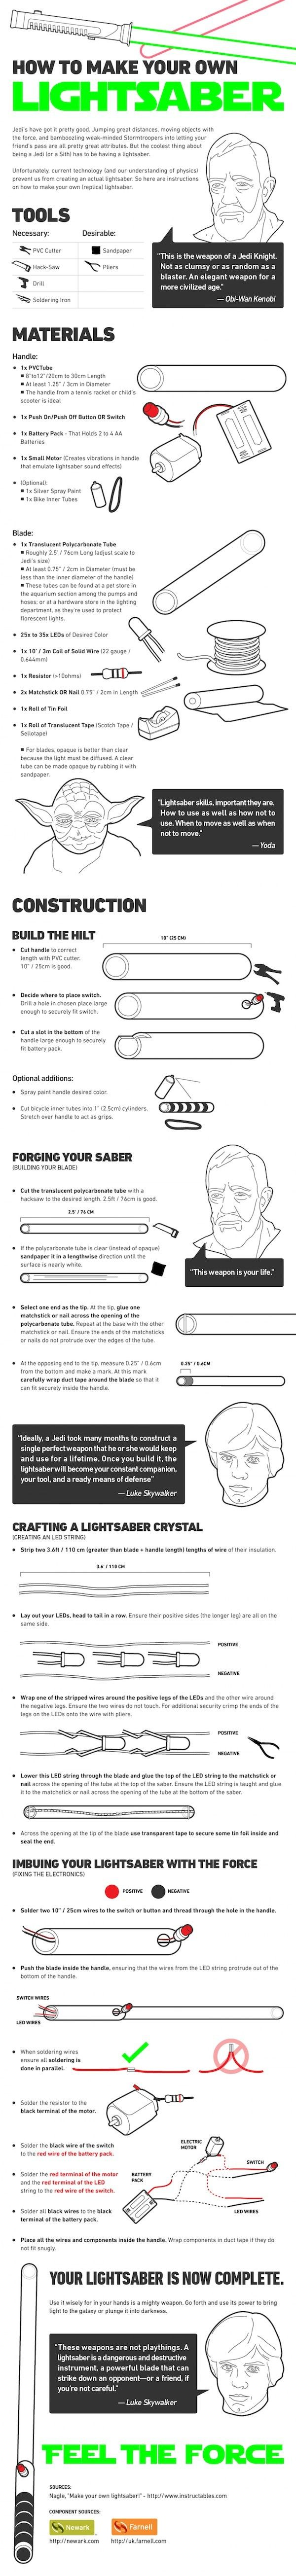 How to make your own light saber [infographic]. Could I do this or do I risk burning the house down